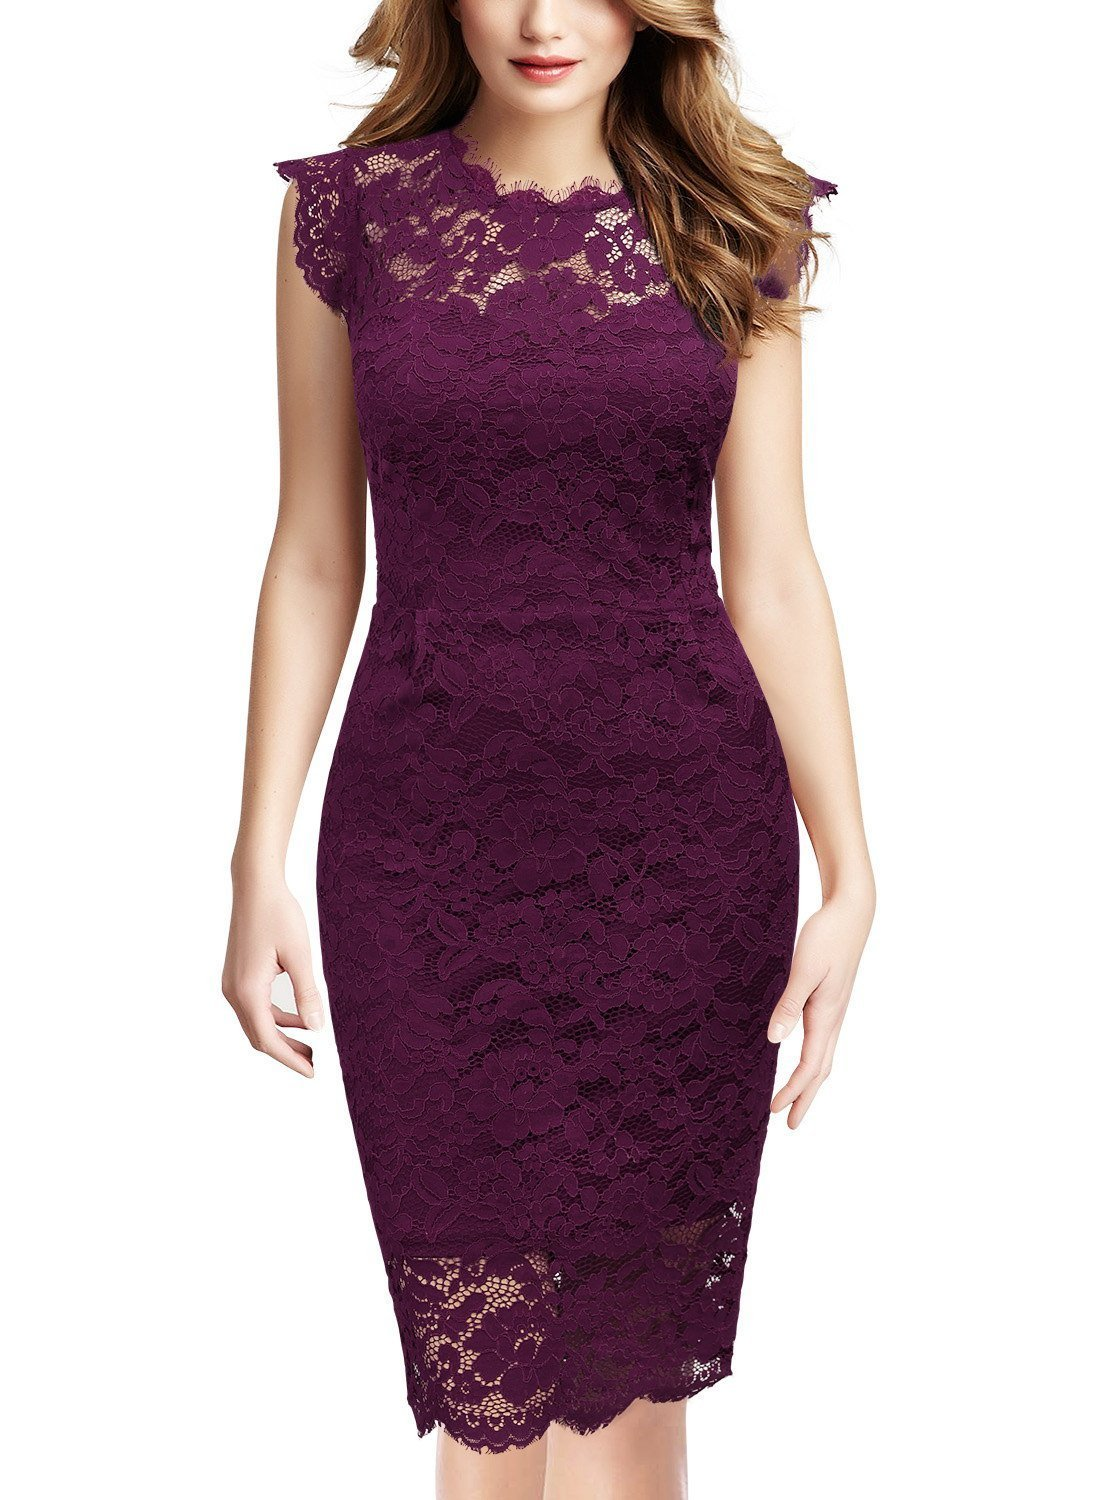 Miusol Women's Retro Floral Lace Slim Evening Cocktail Mini Dress QF3300-